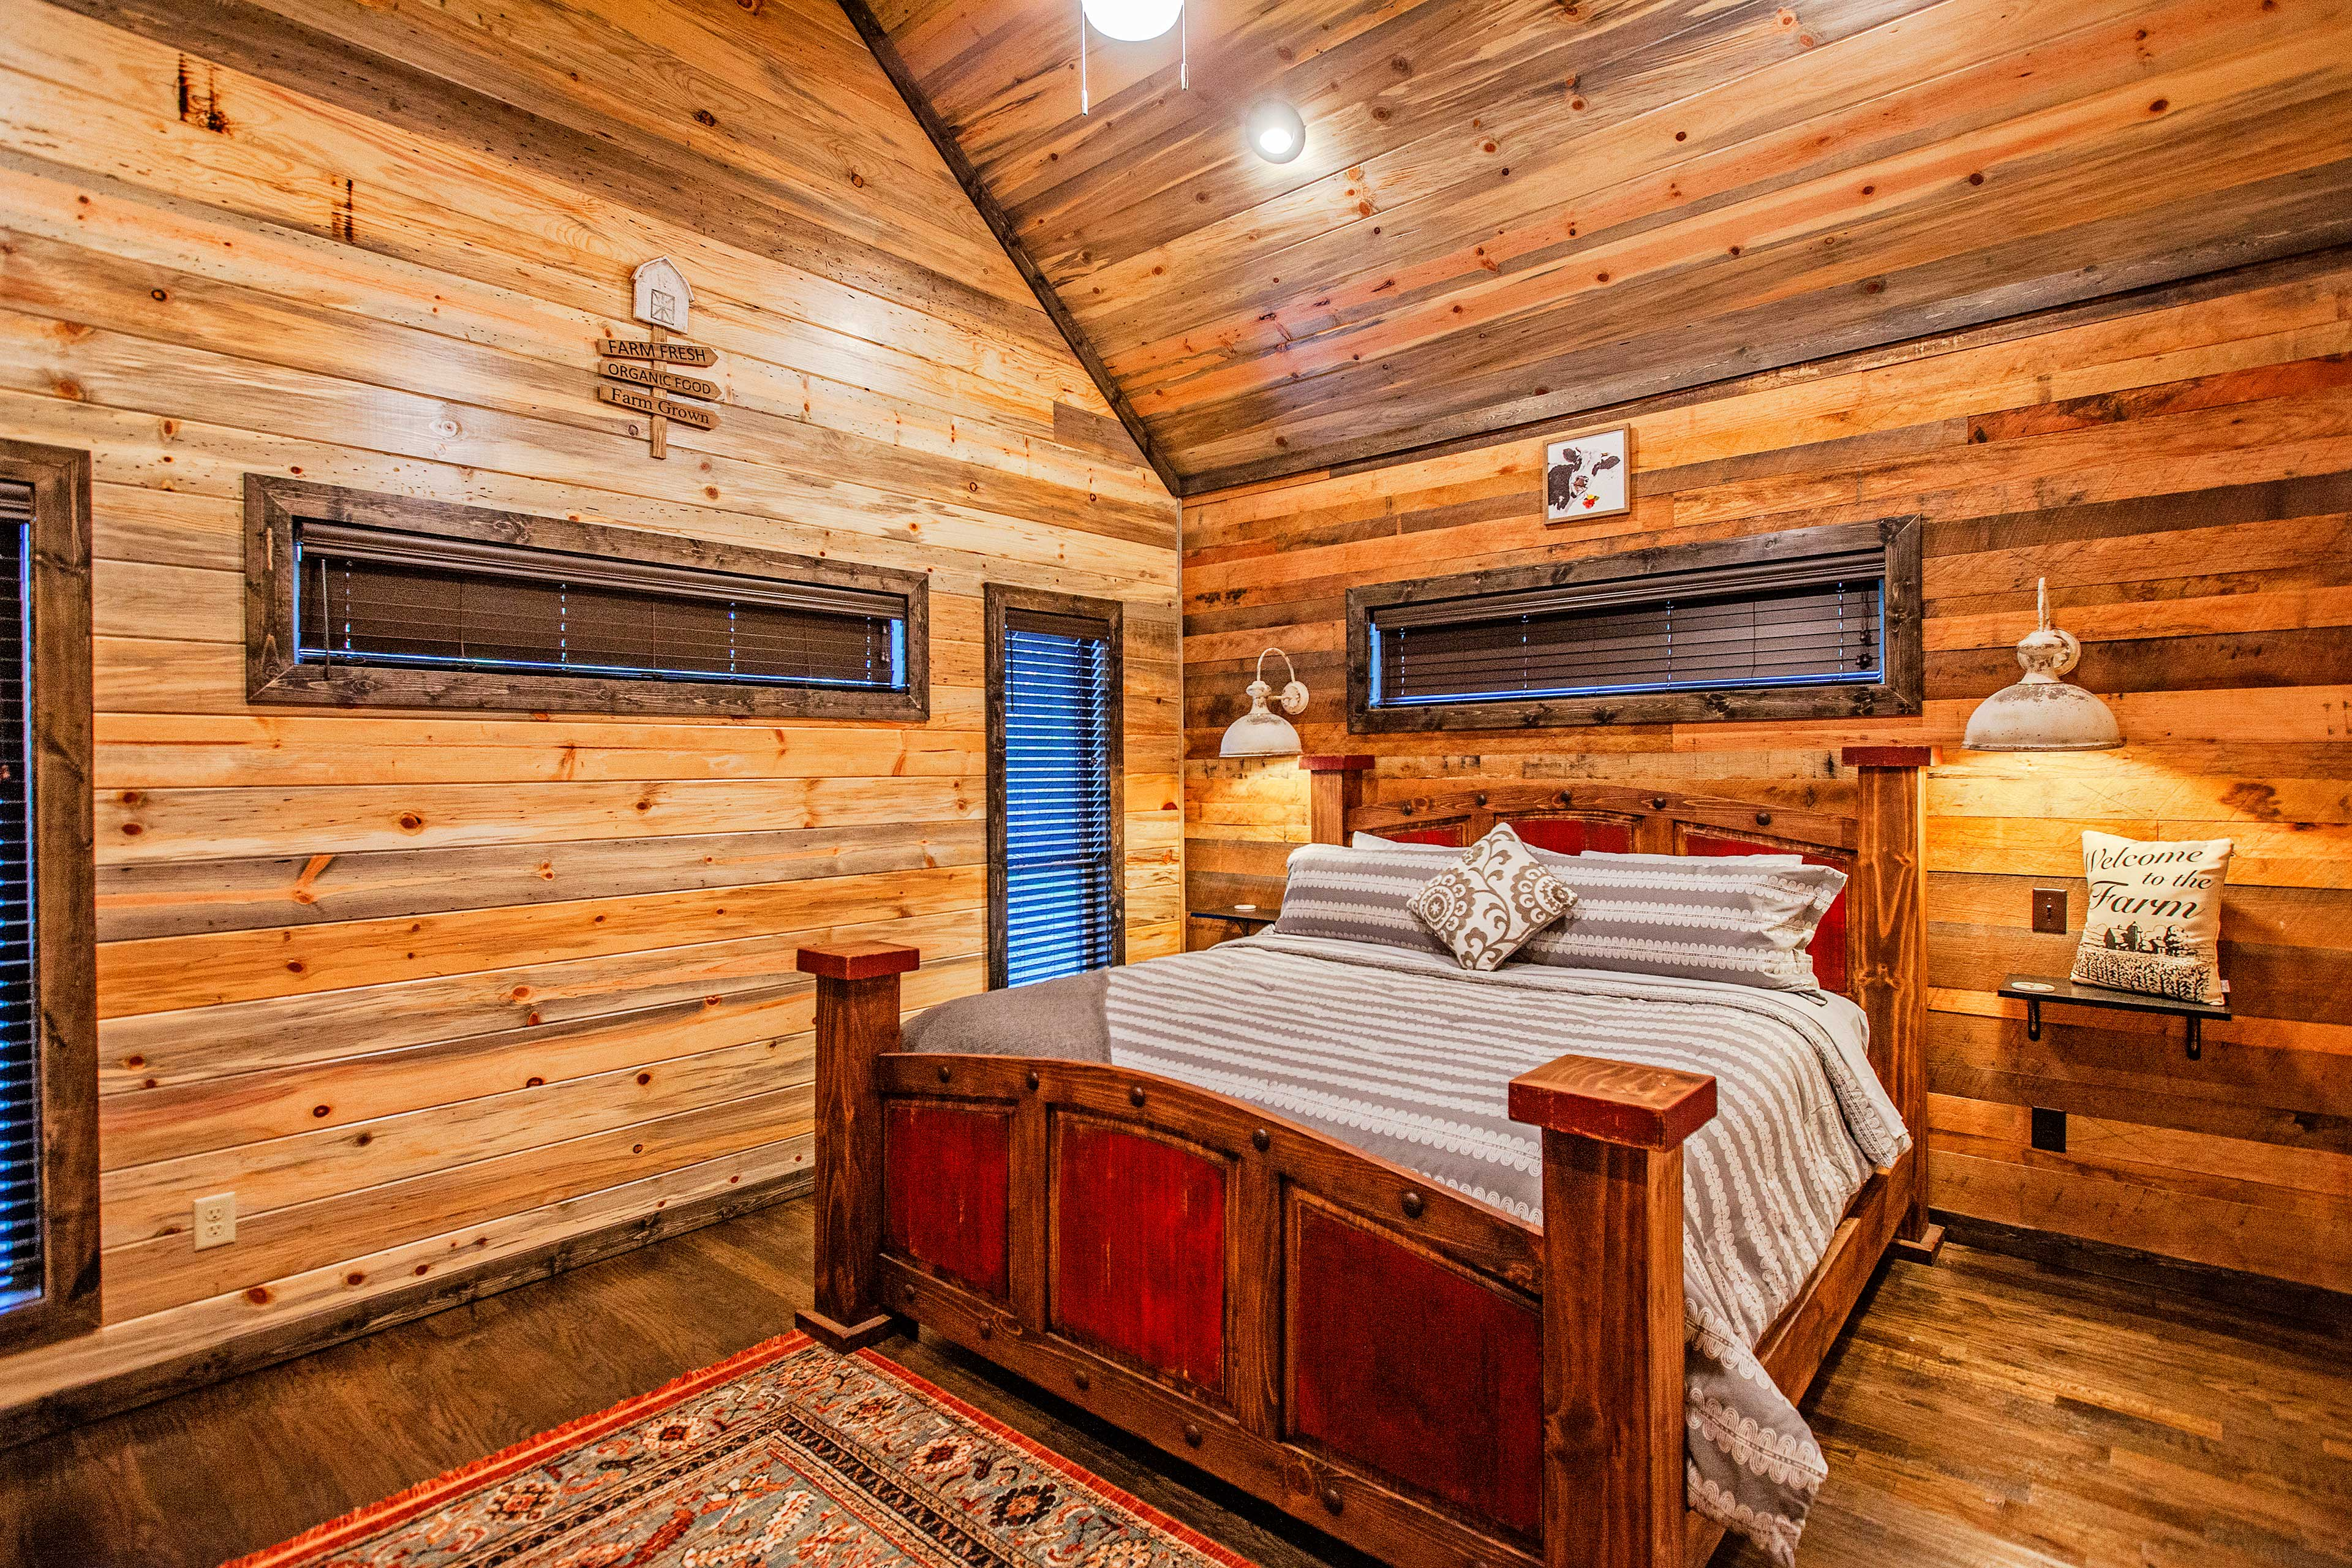 Finally, you'll find another king bed in the fourth bedroom.